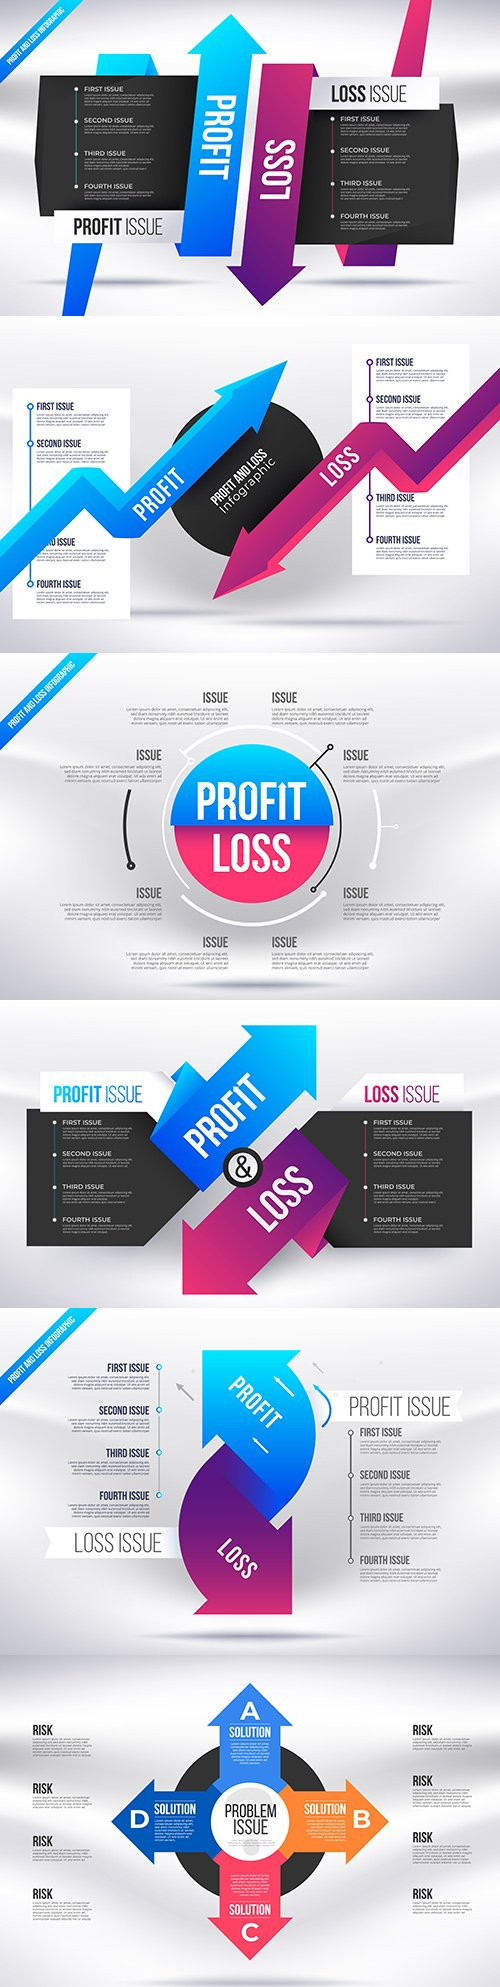 Profit and loss infographic simple business presentation